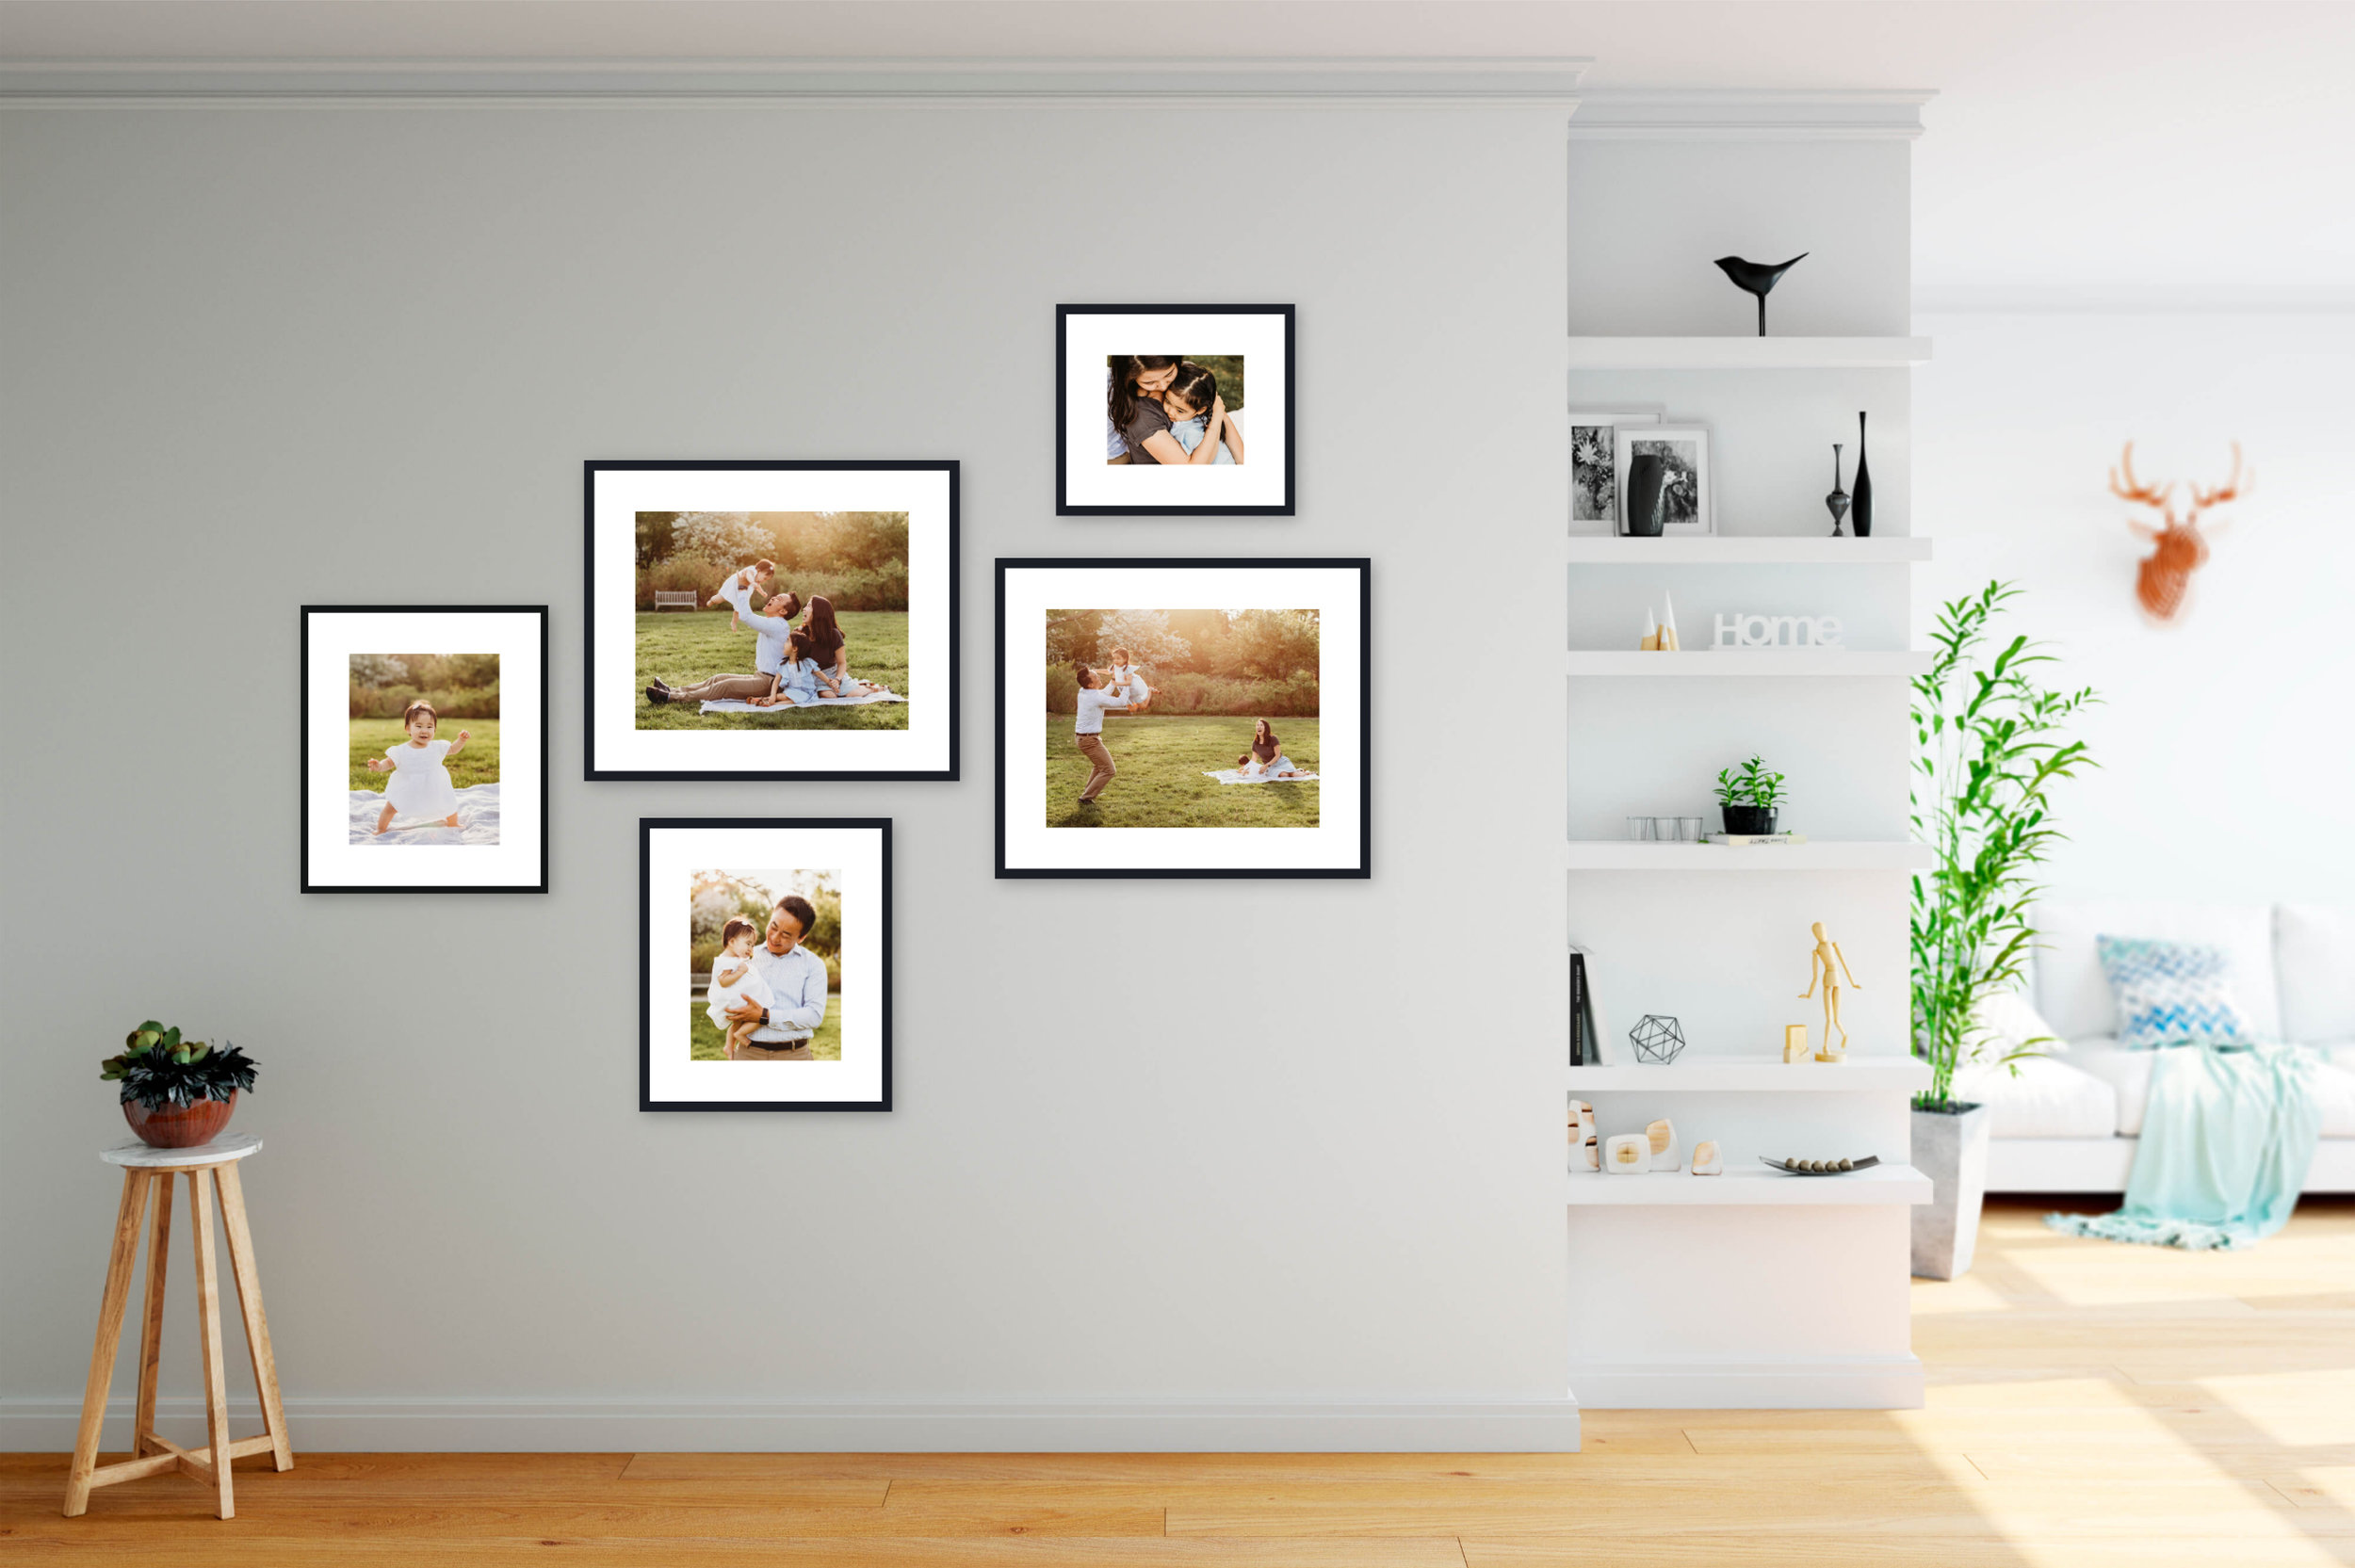 acton-family-photographer-gallery-wall.jpg